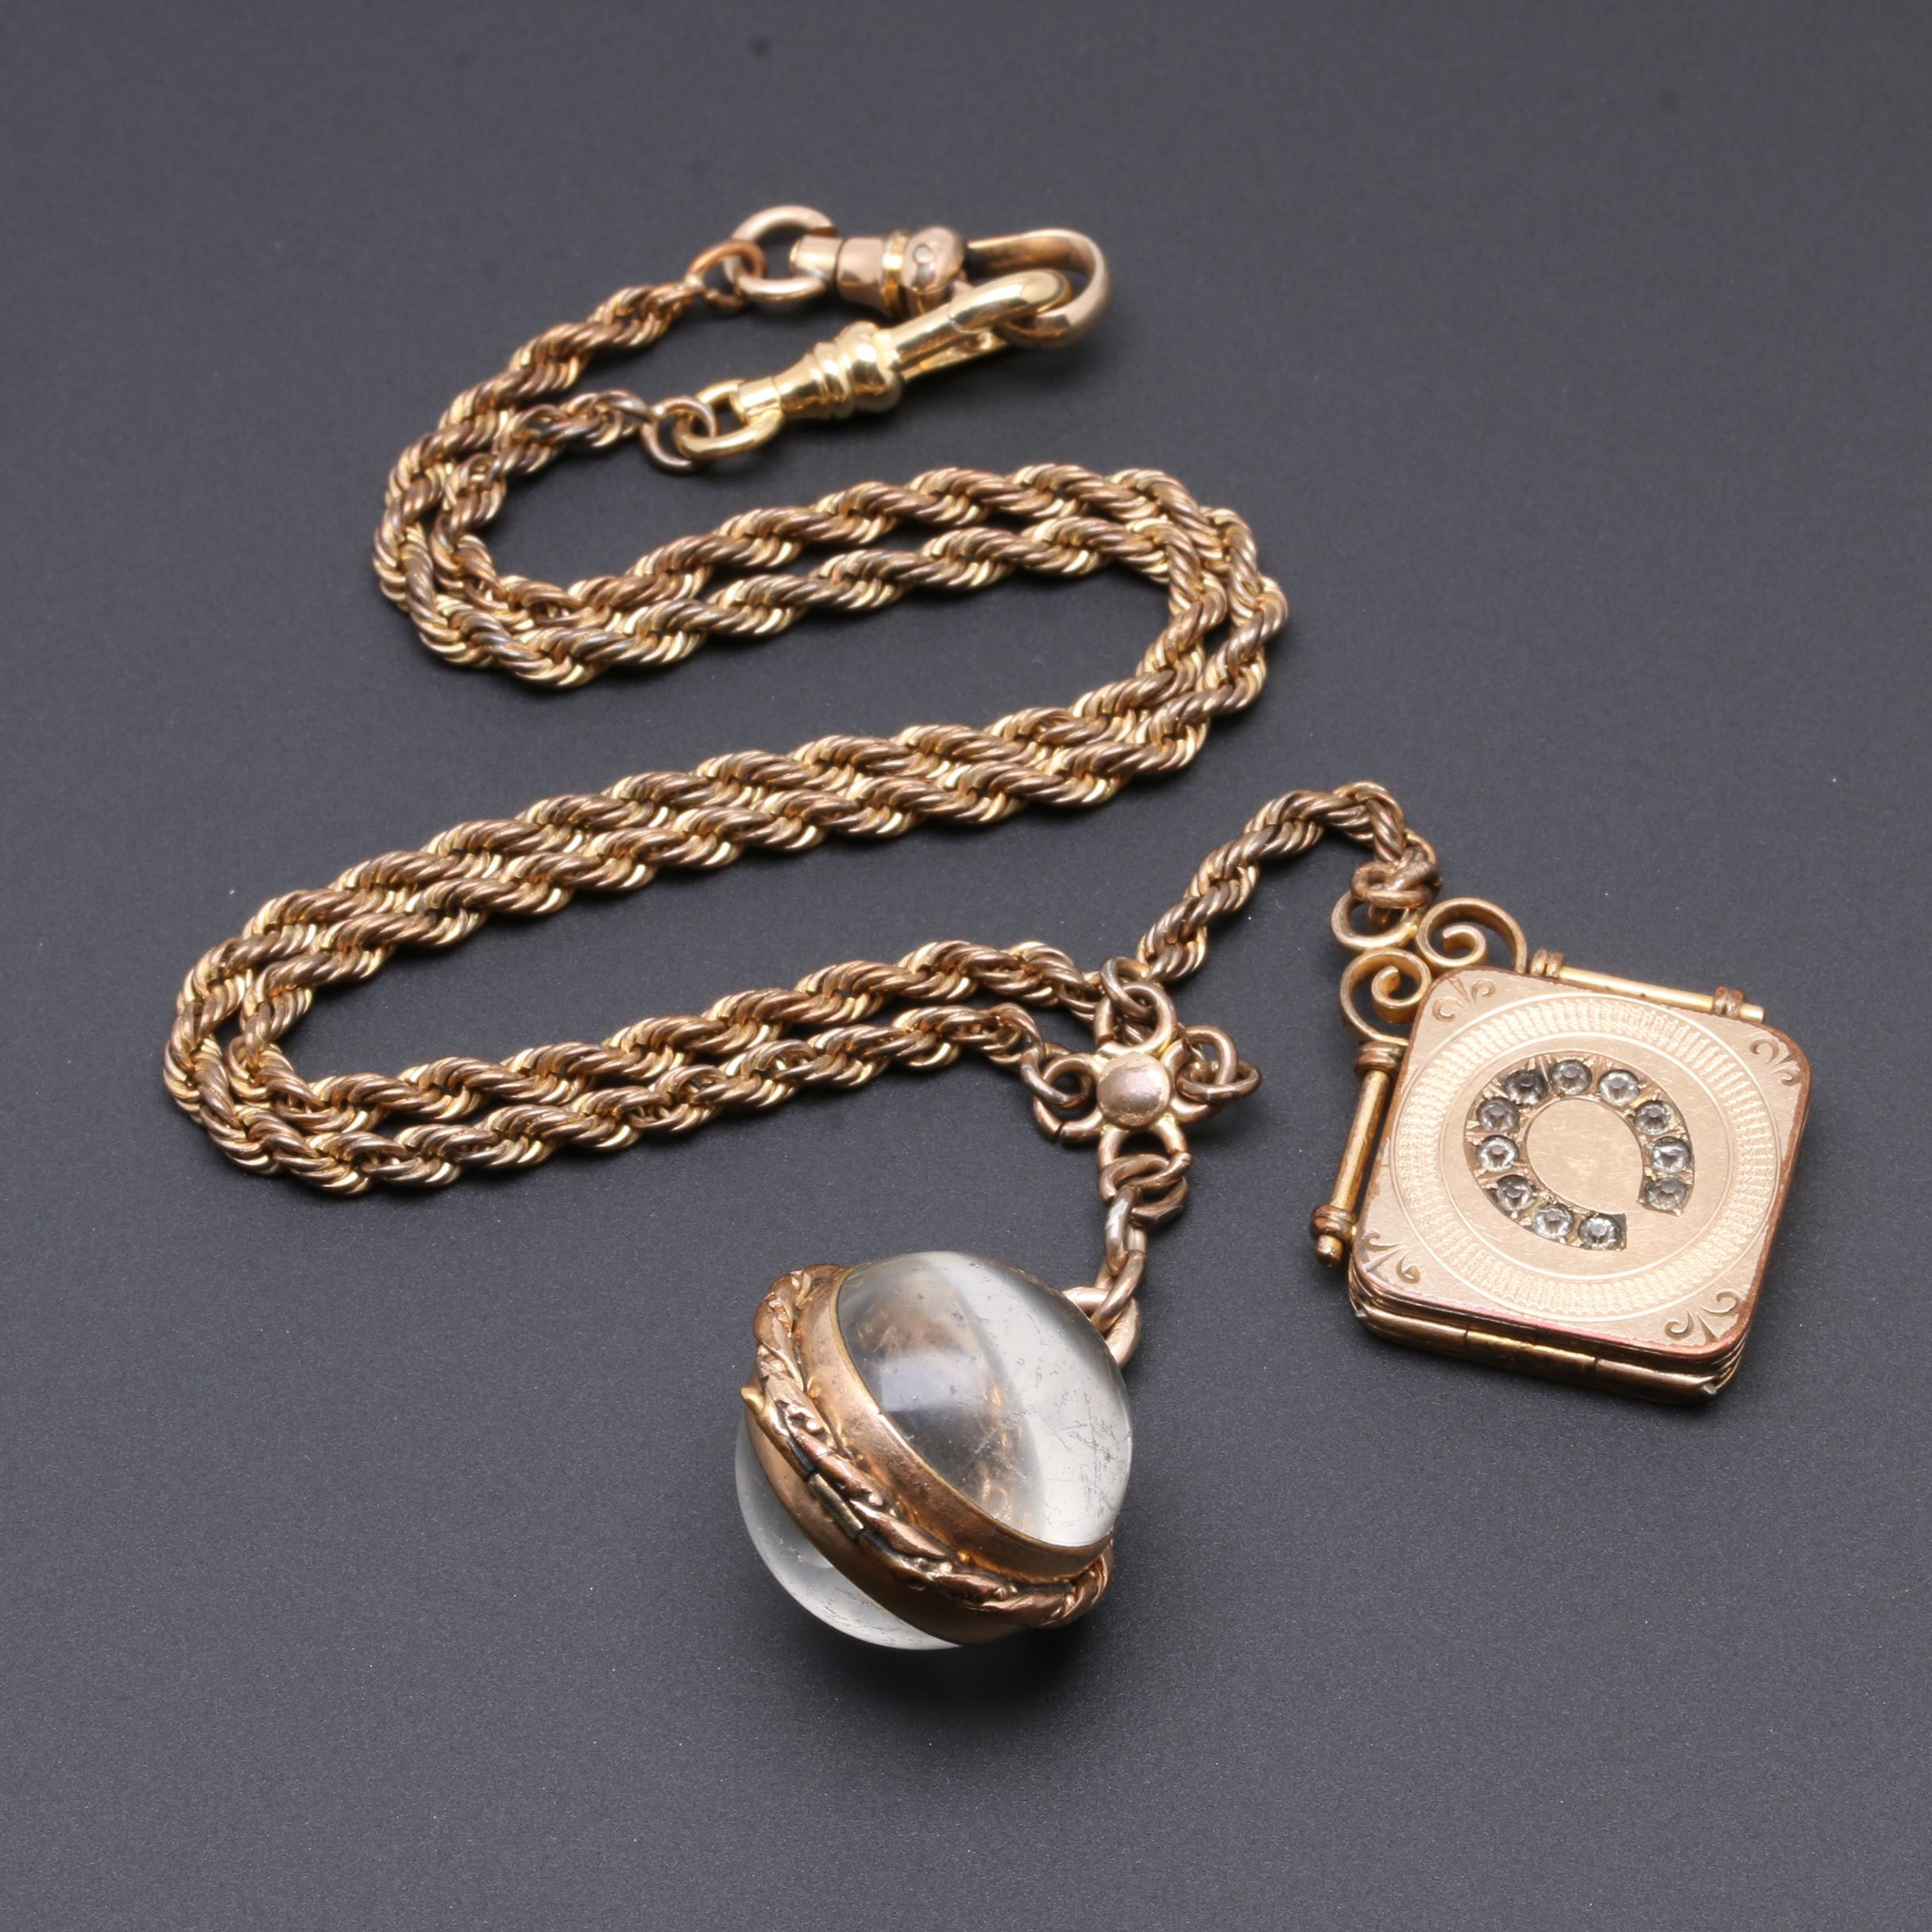 Victorian Fob Chain With Horseshoe and Glass Sphere Locket Charms